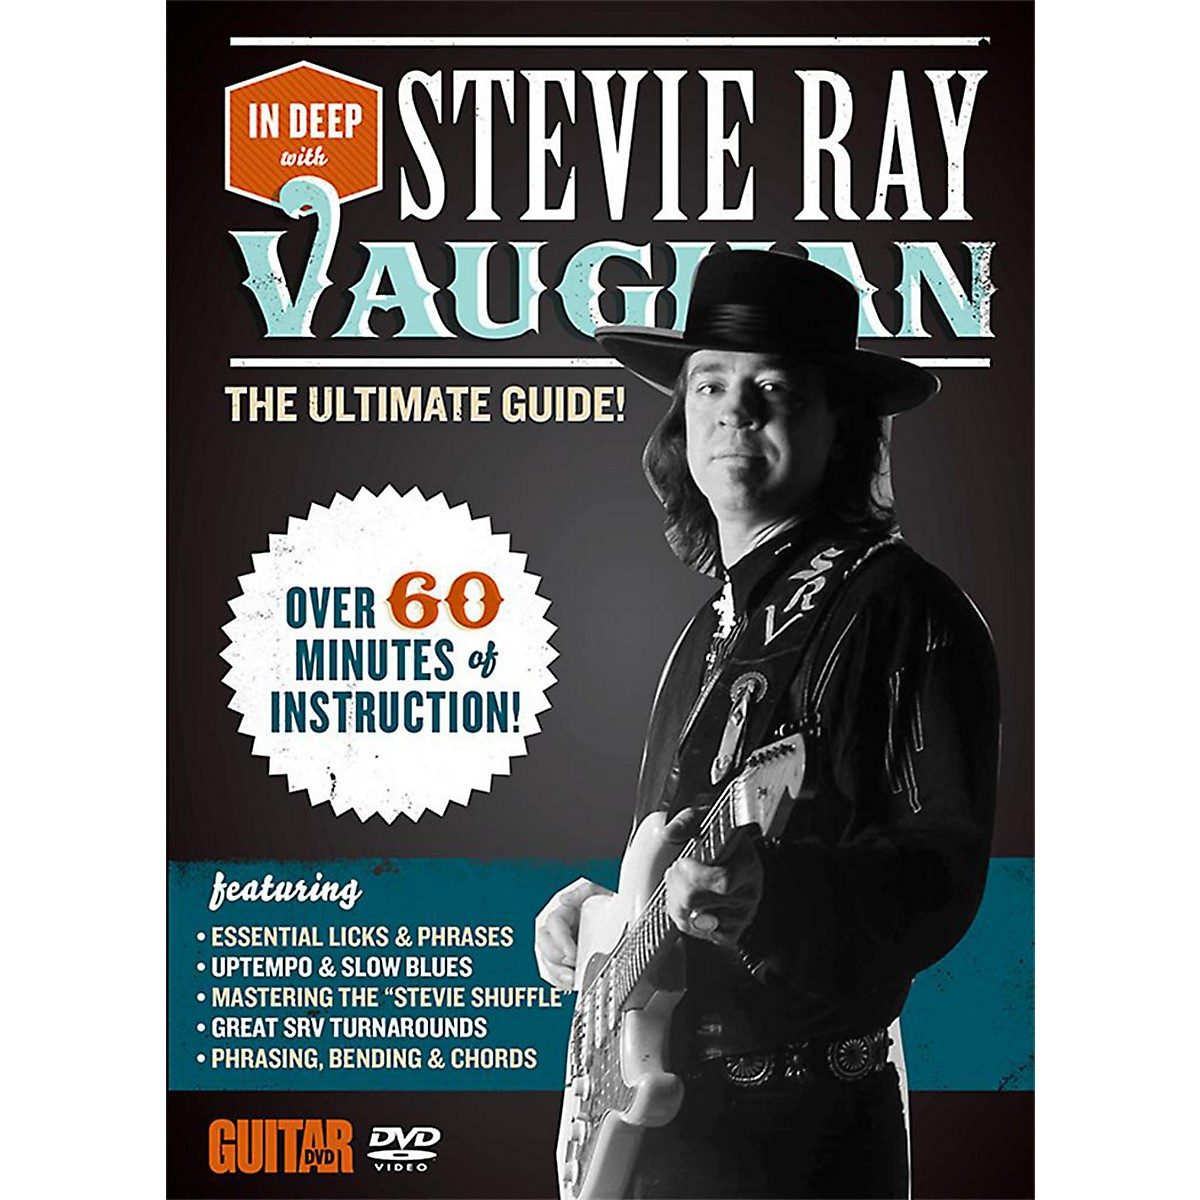 Alfred Guitar World In Deep with Stevie Ray Vaughan DVD